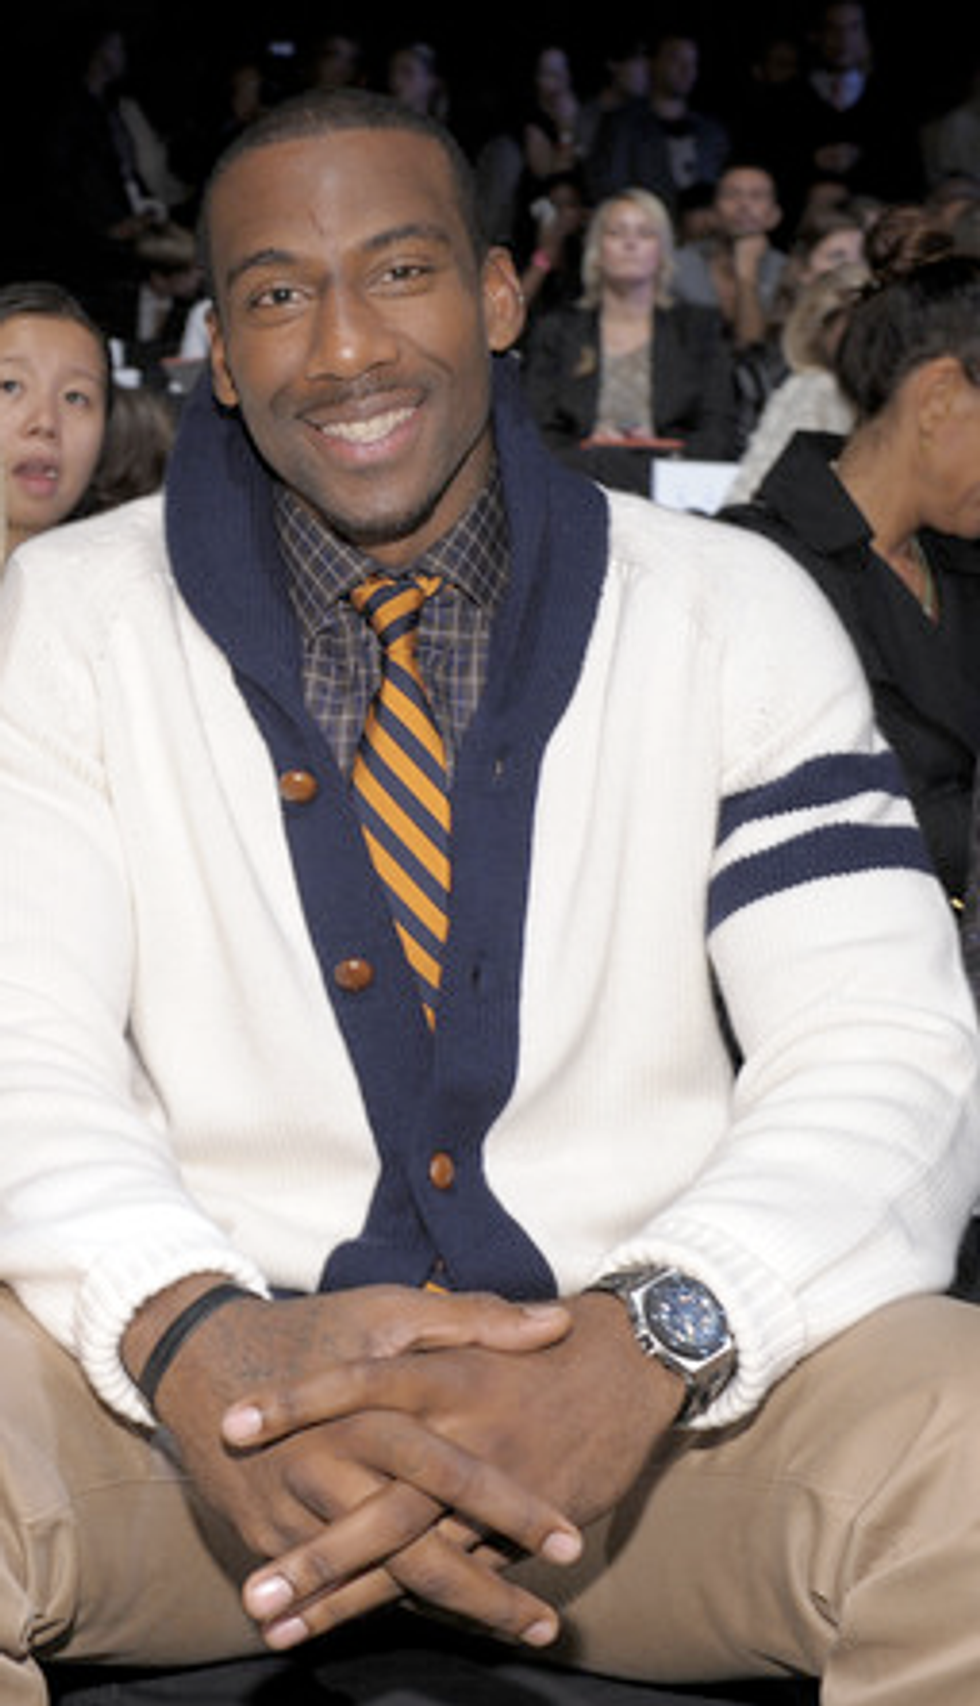 Marc Jacobs, Frank Tell & Amar'e Stoudemire in Today's Style Scraps